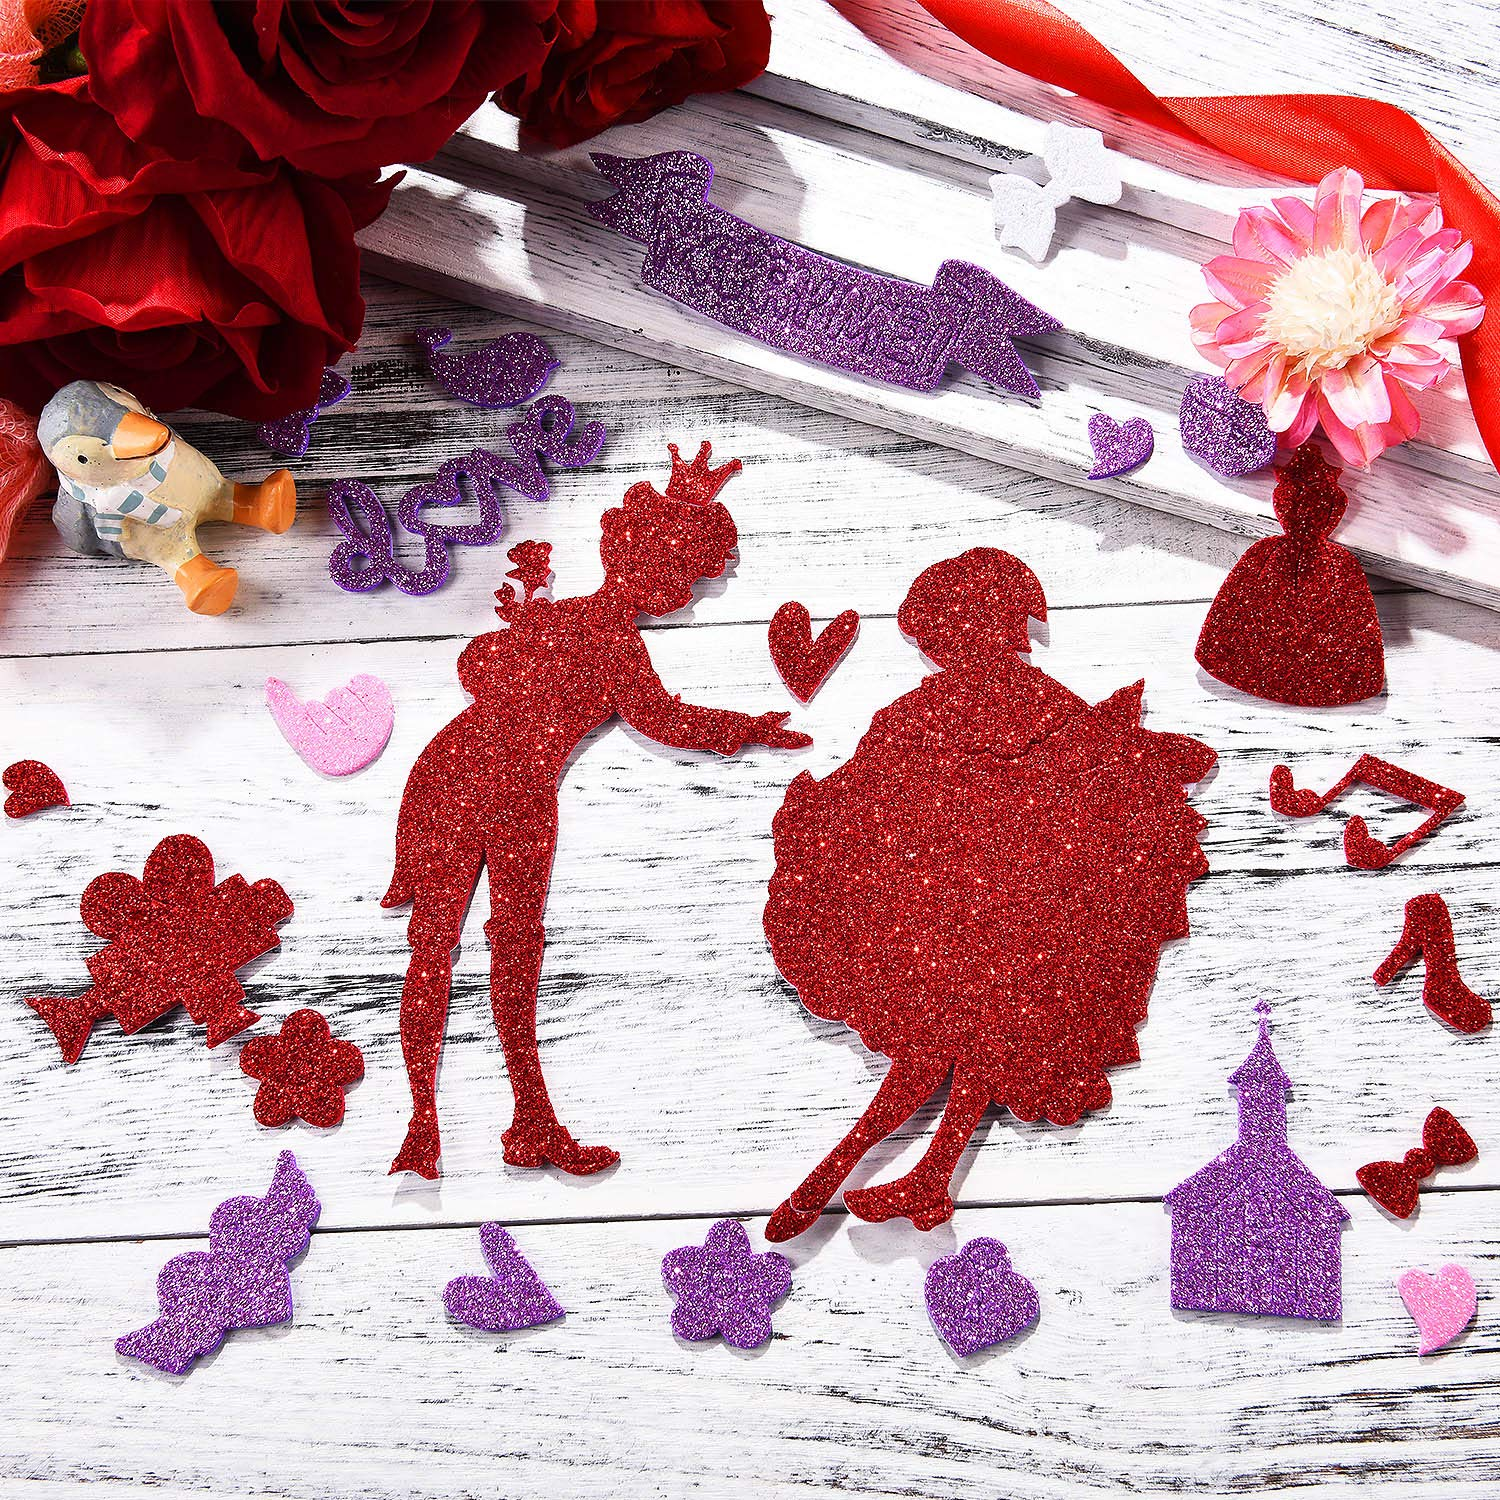 WILLBOND 500 Pieces Valentines Day Stickers Glitter Foam Stickers Self-Adhesive Craft Stickers for Valentines Party Decoration DIY Crafts Supplies